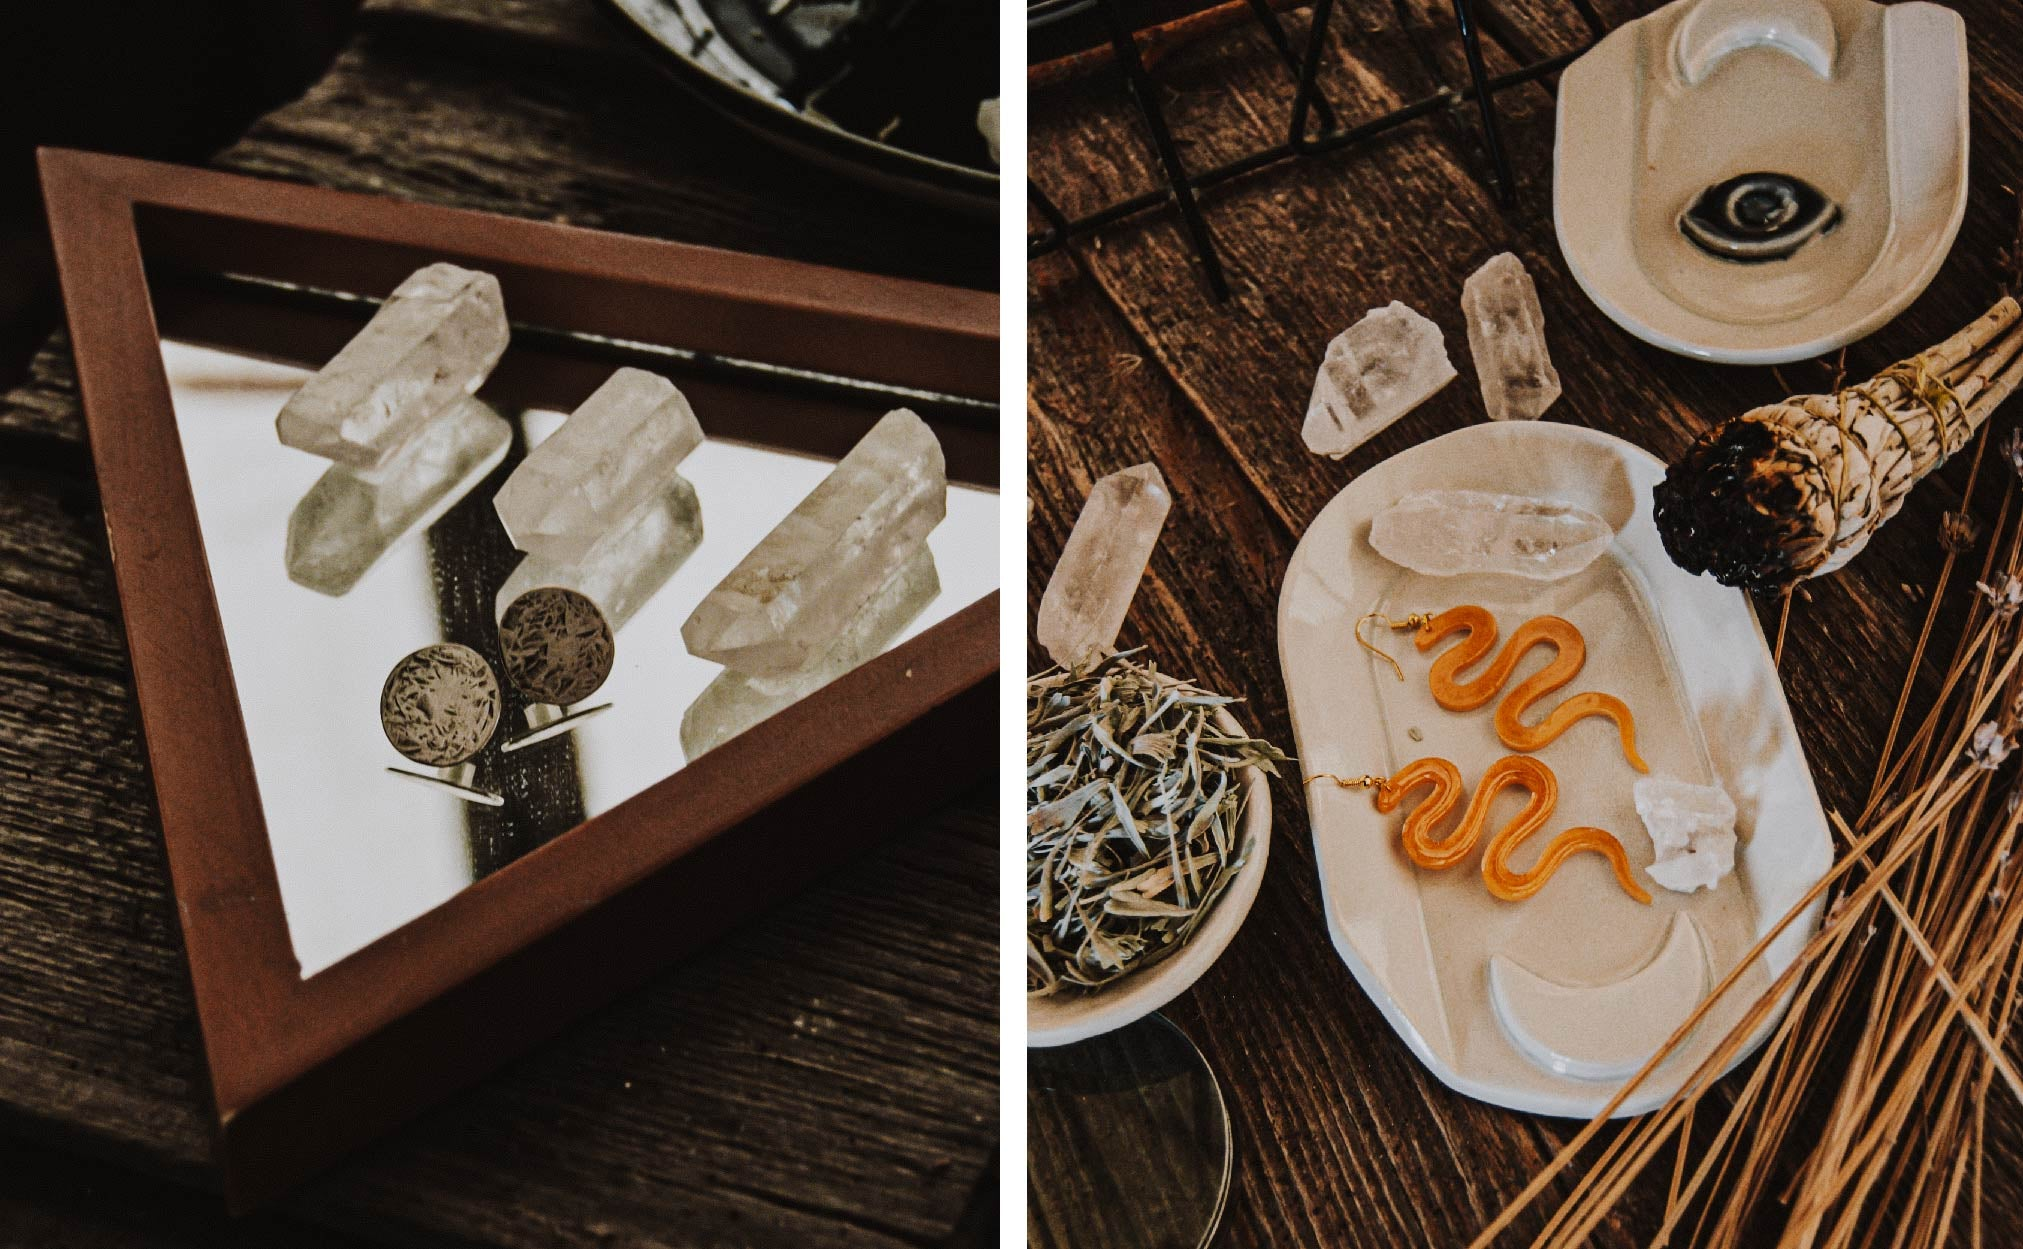 Handmade jewelry on a spooky halloween table setting